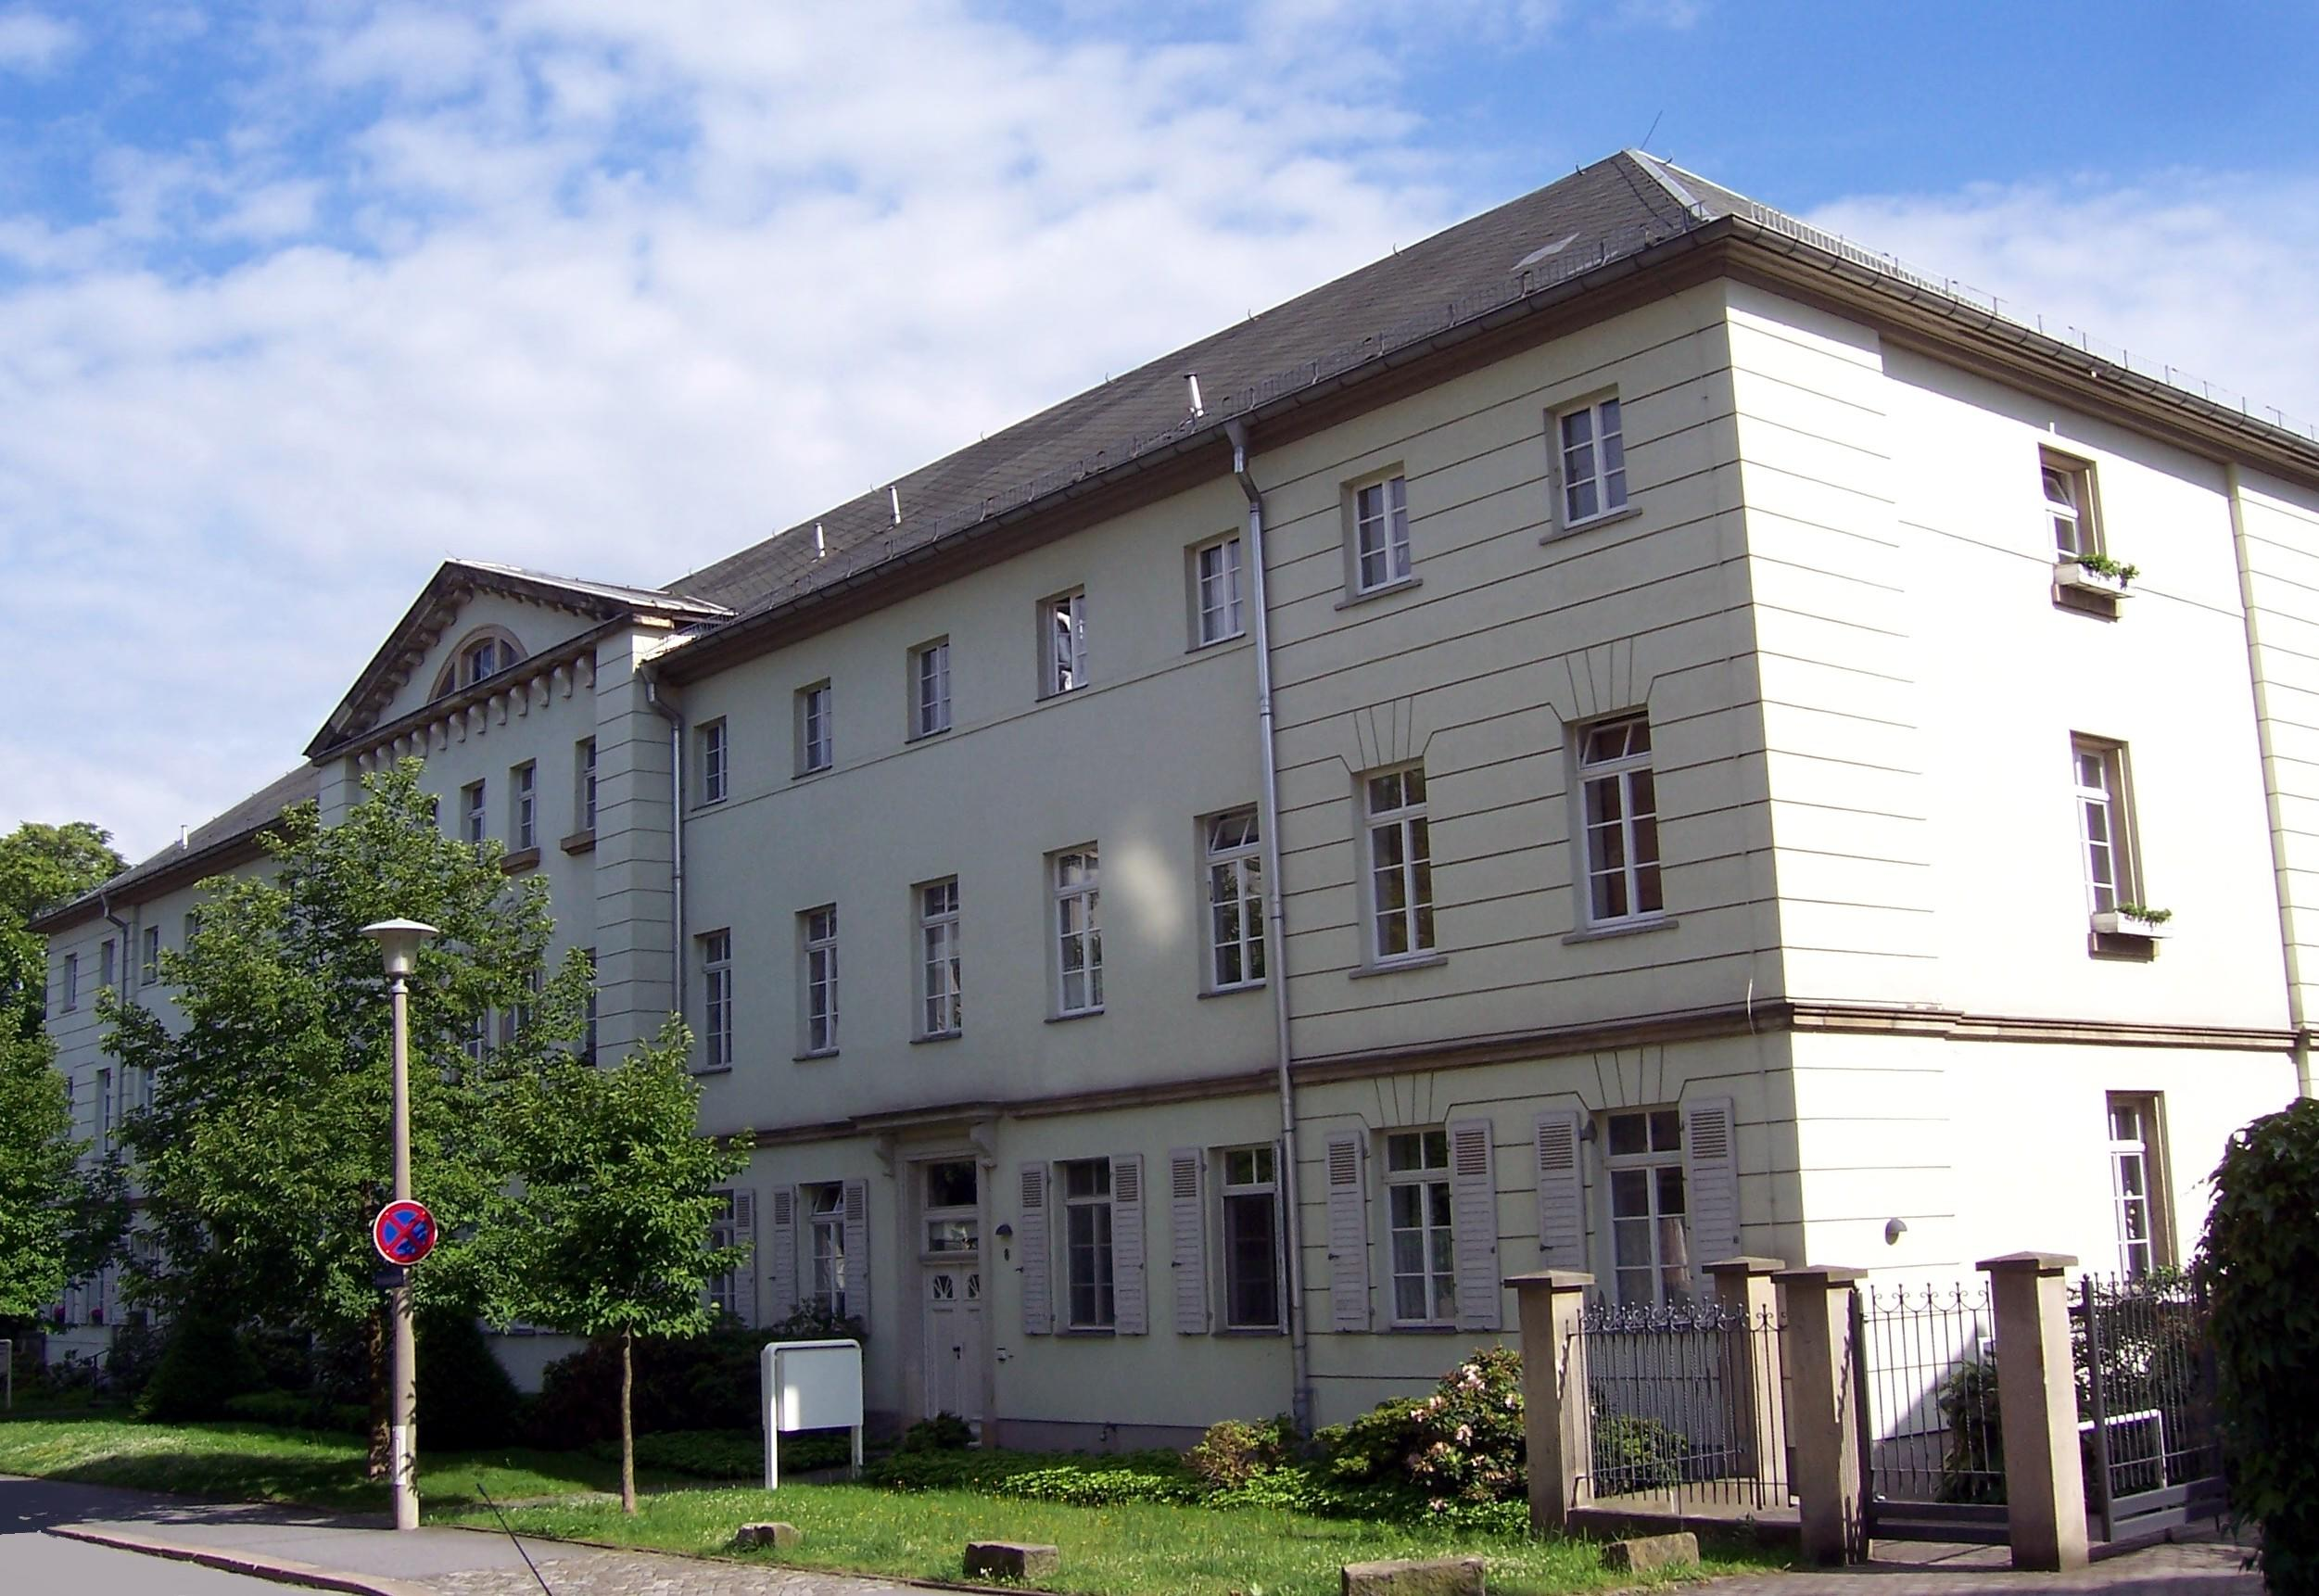 Altenzentrum Schwanenhaus